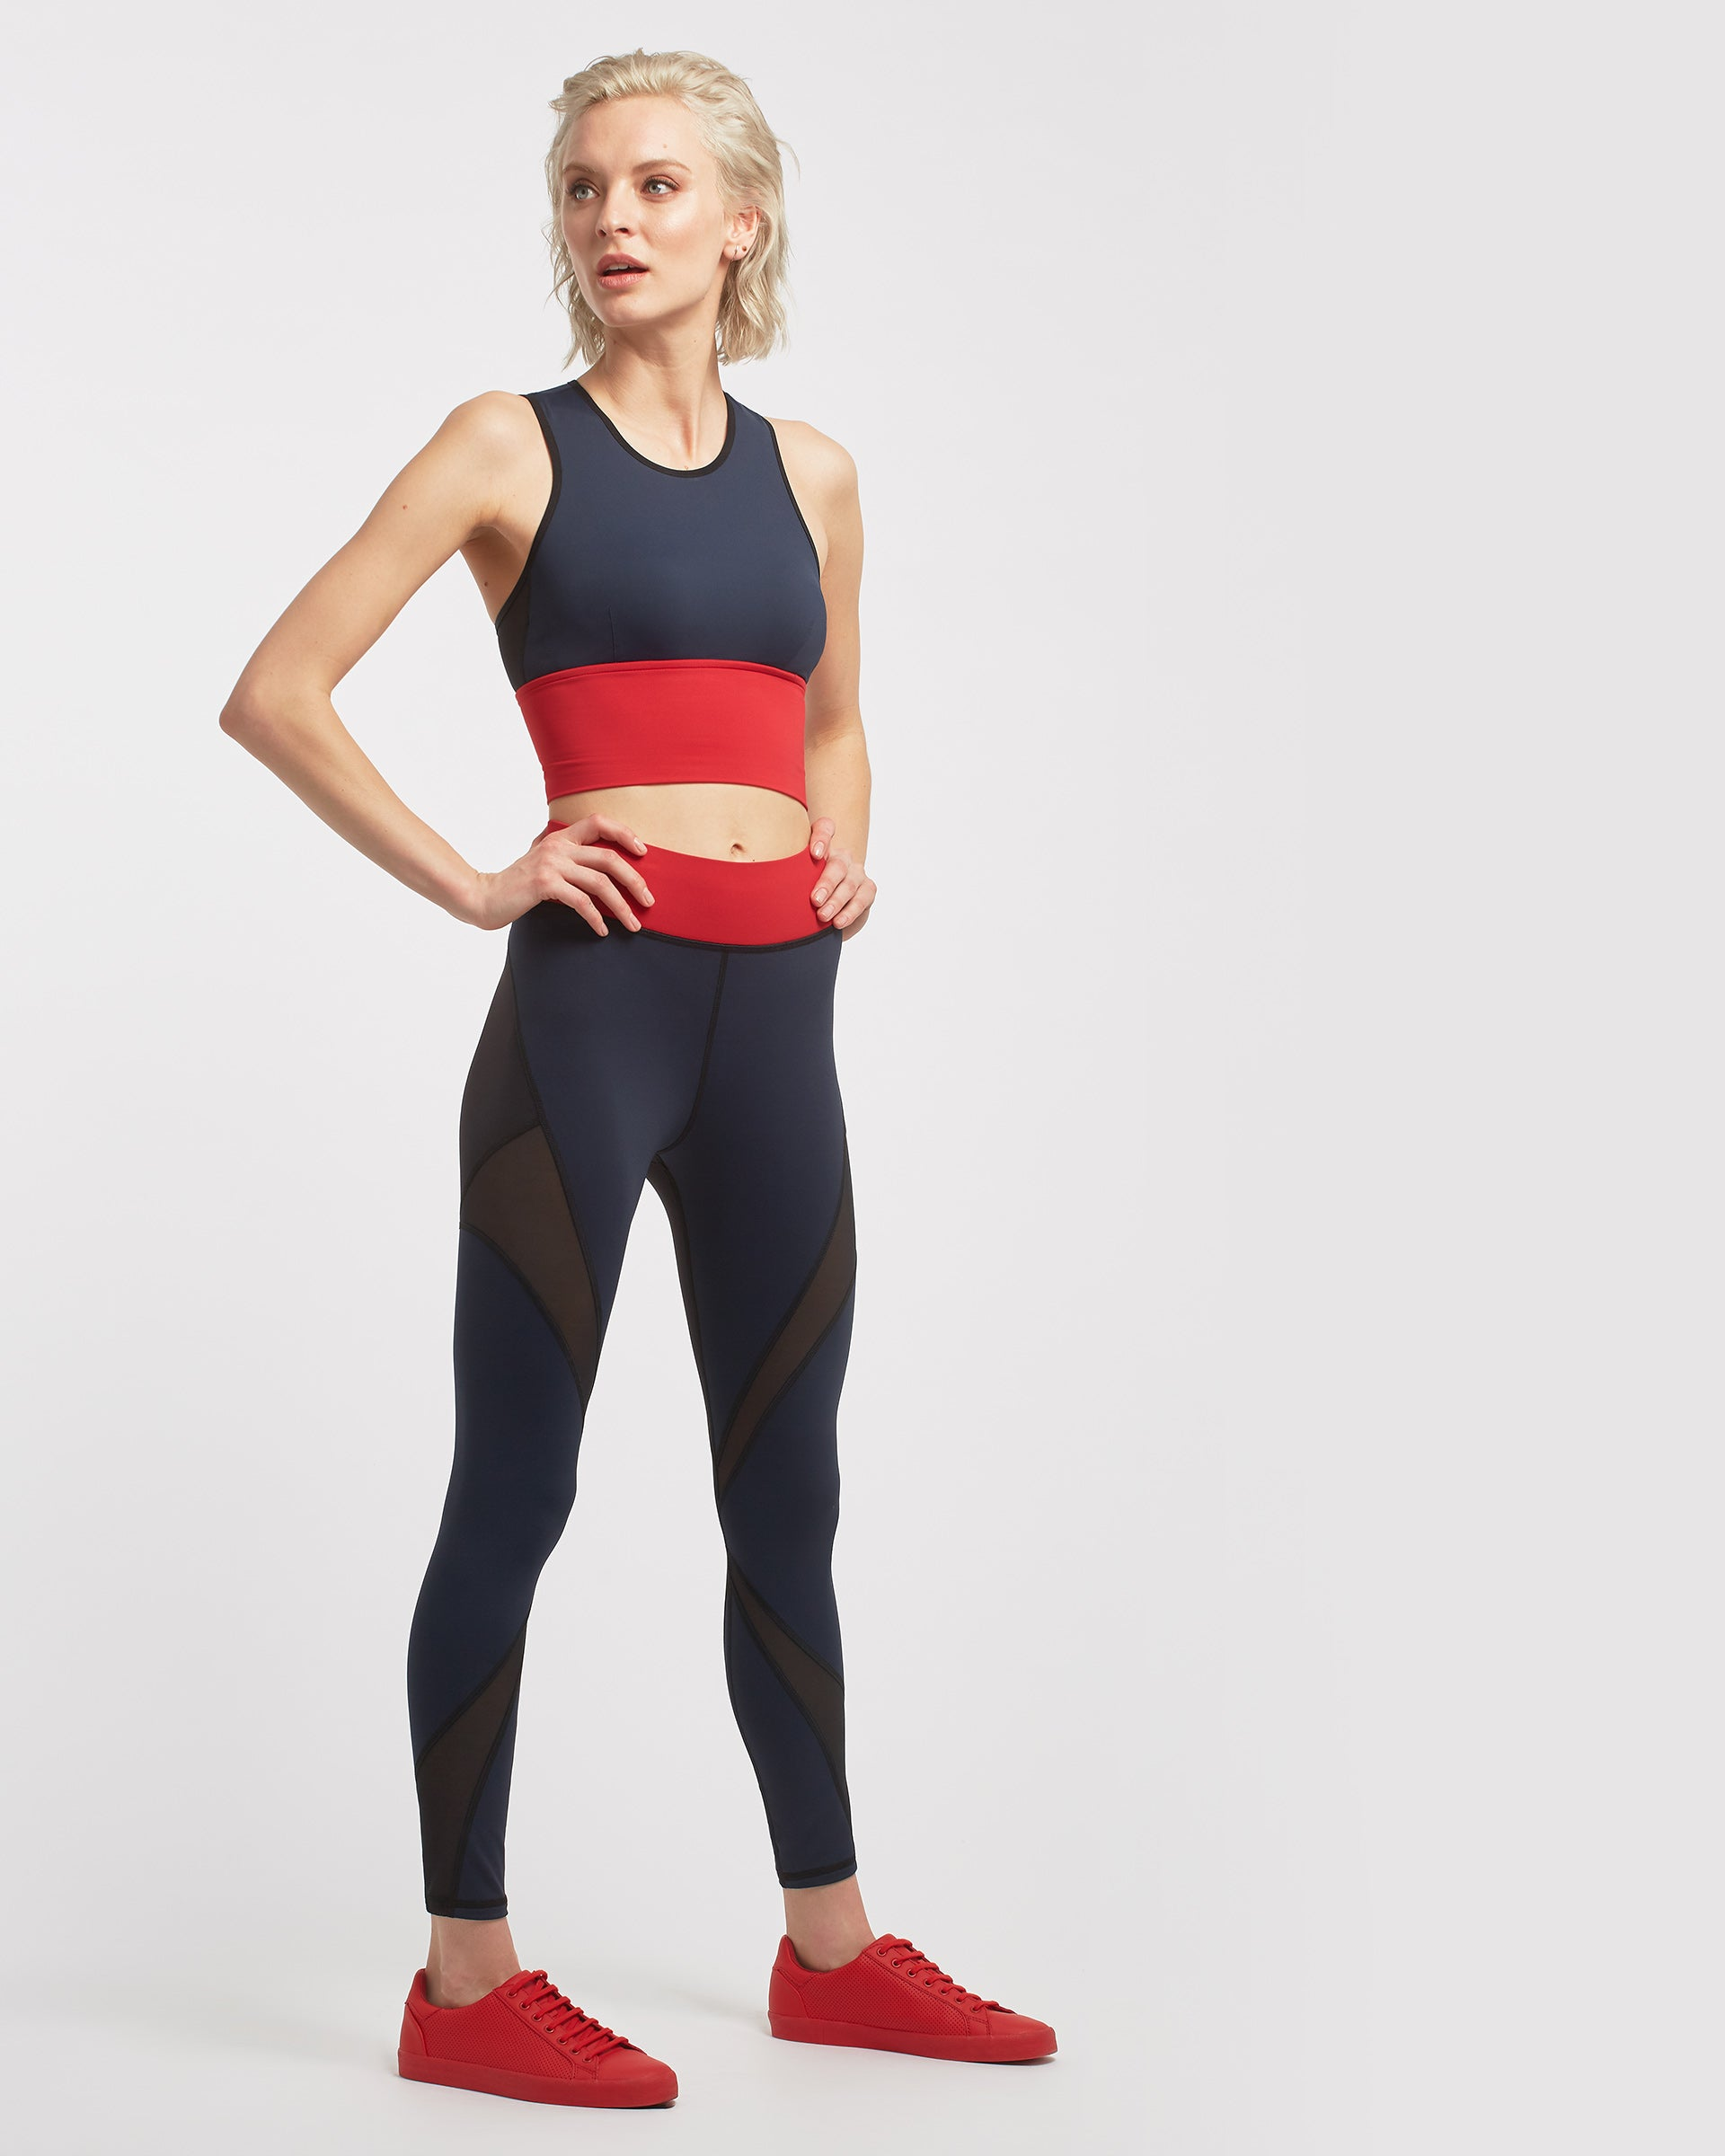 Ignite Crop Top - Deep Sea Navy/Fire Red